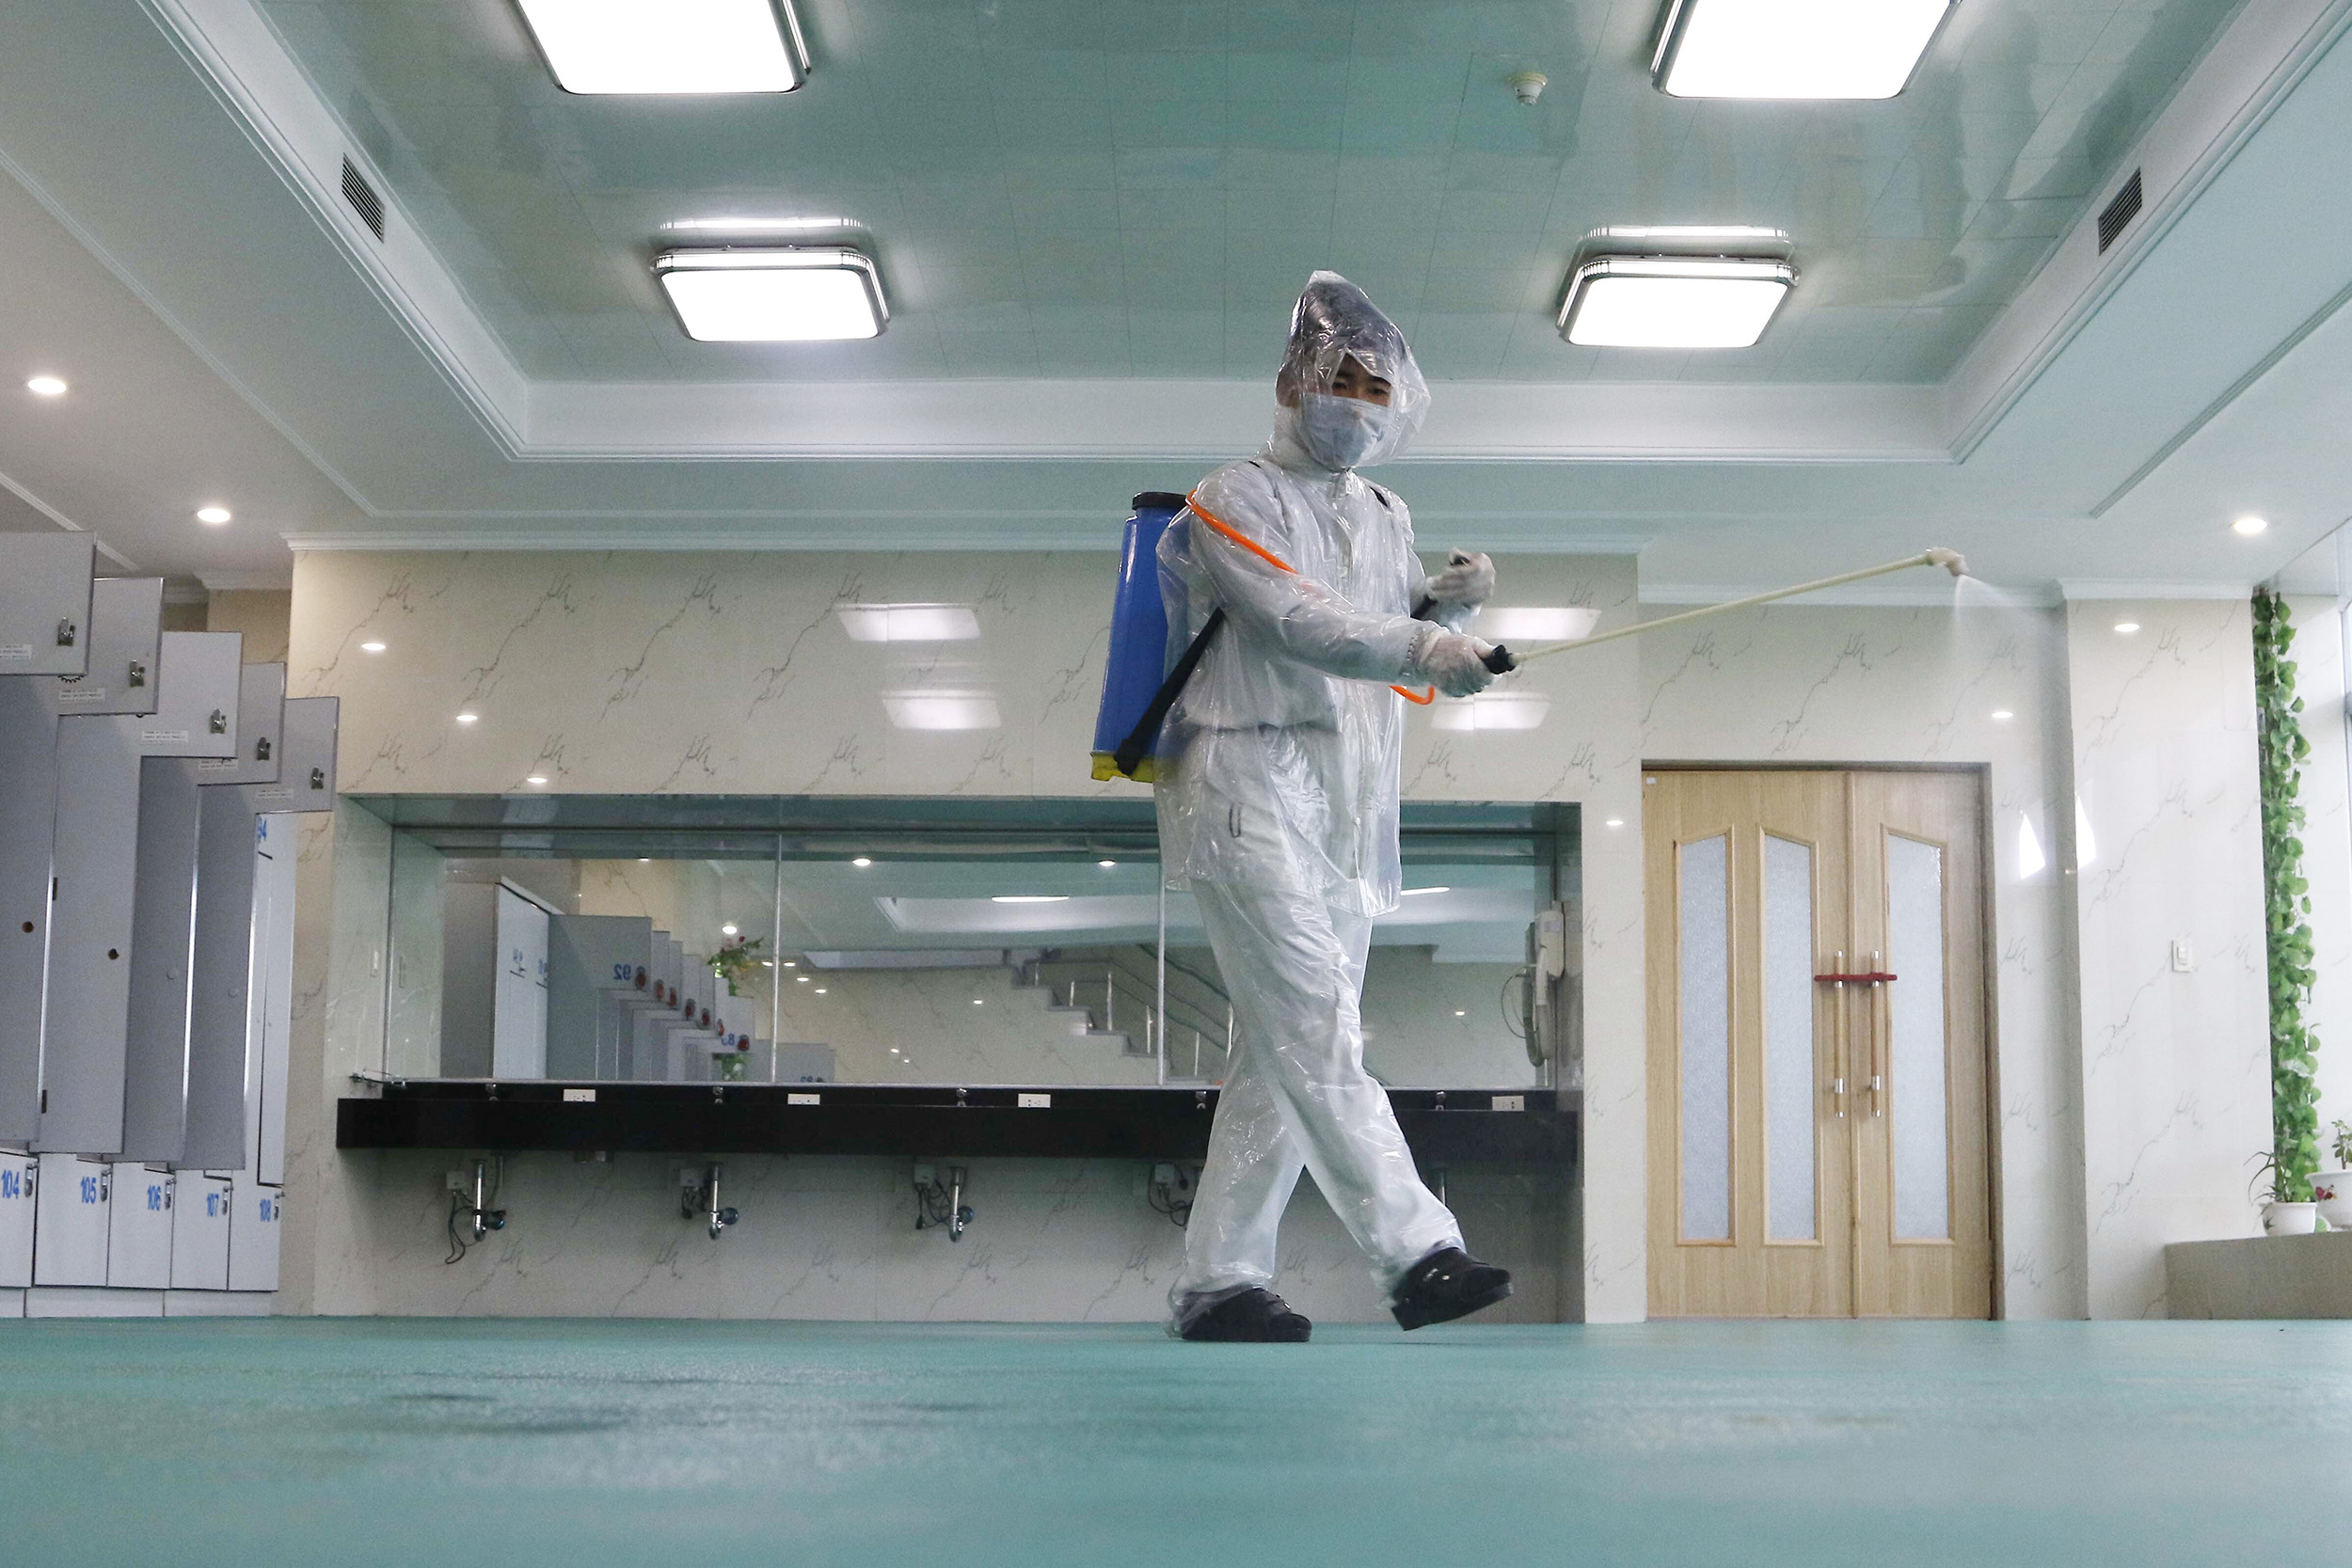 An employee disinfects the room to help curb the spread of the coronavirus at the Ryugyong Health Complex's public bath in Pyongyang, North Korea, on July 31.